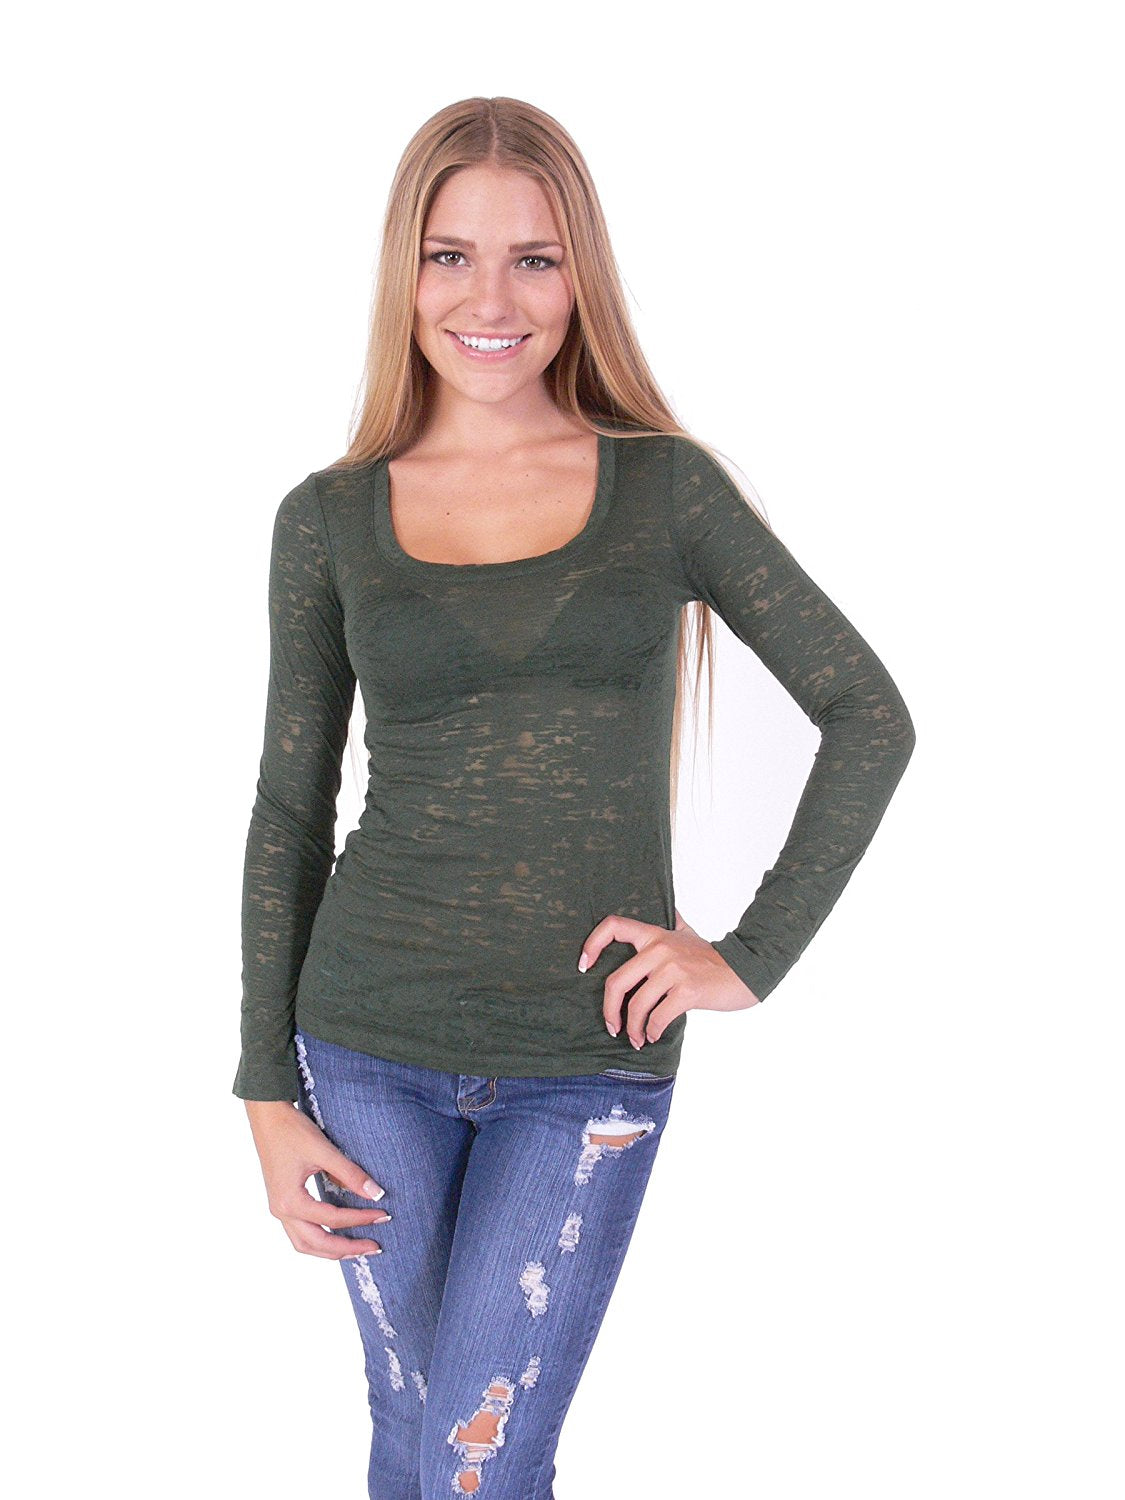 Hollywood Star Fashion Women's Long Sleeve Scoop Neck Burnout Tank Top Shirt